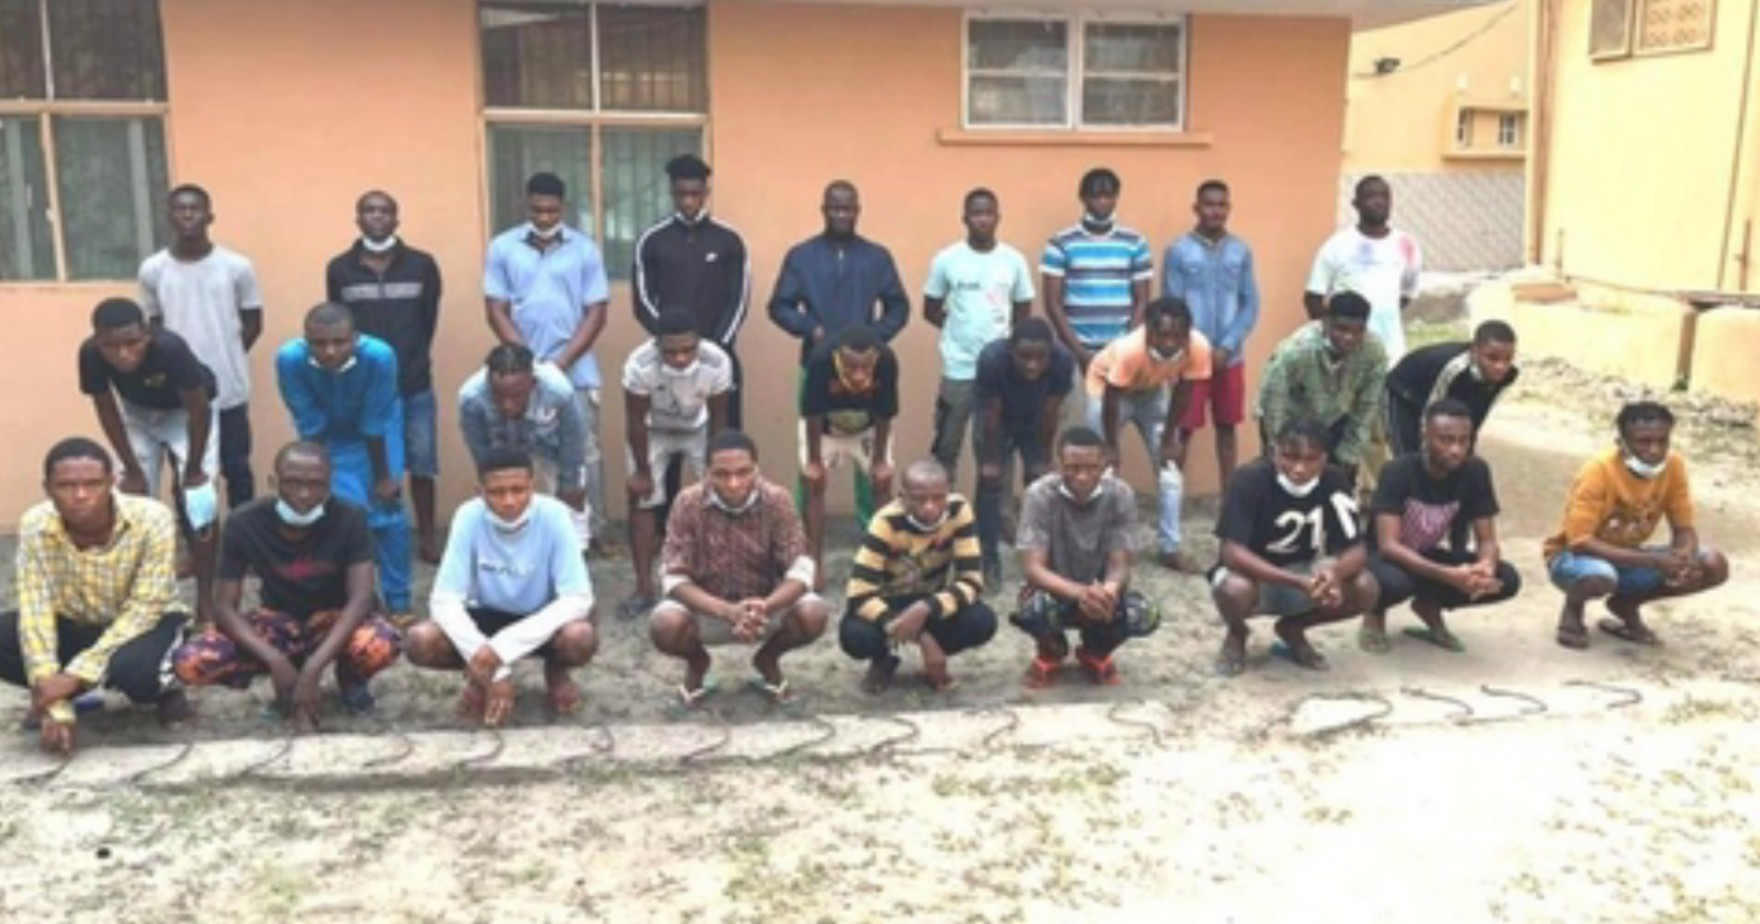 EFCC arrest 28 suspected internet fraudsters using pseudo names to defraud victims in Lagos